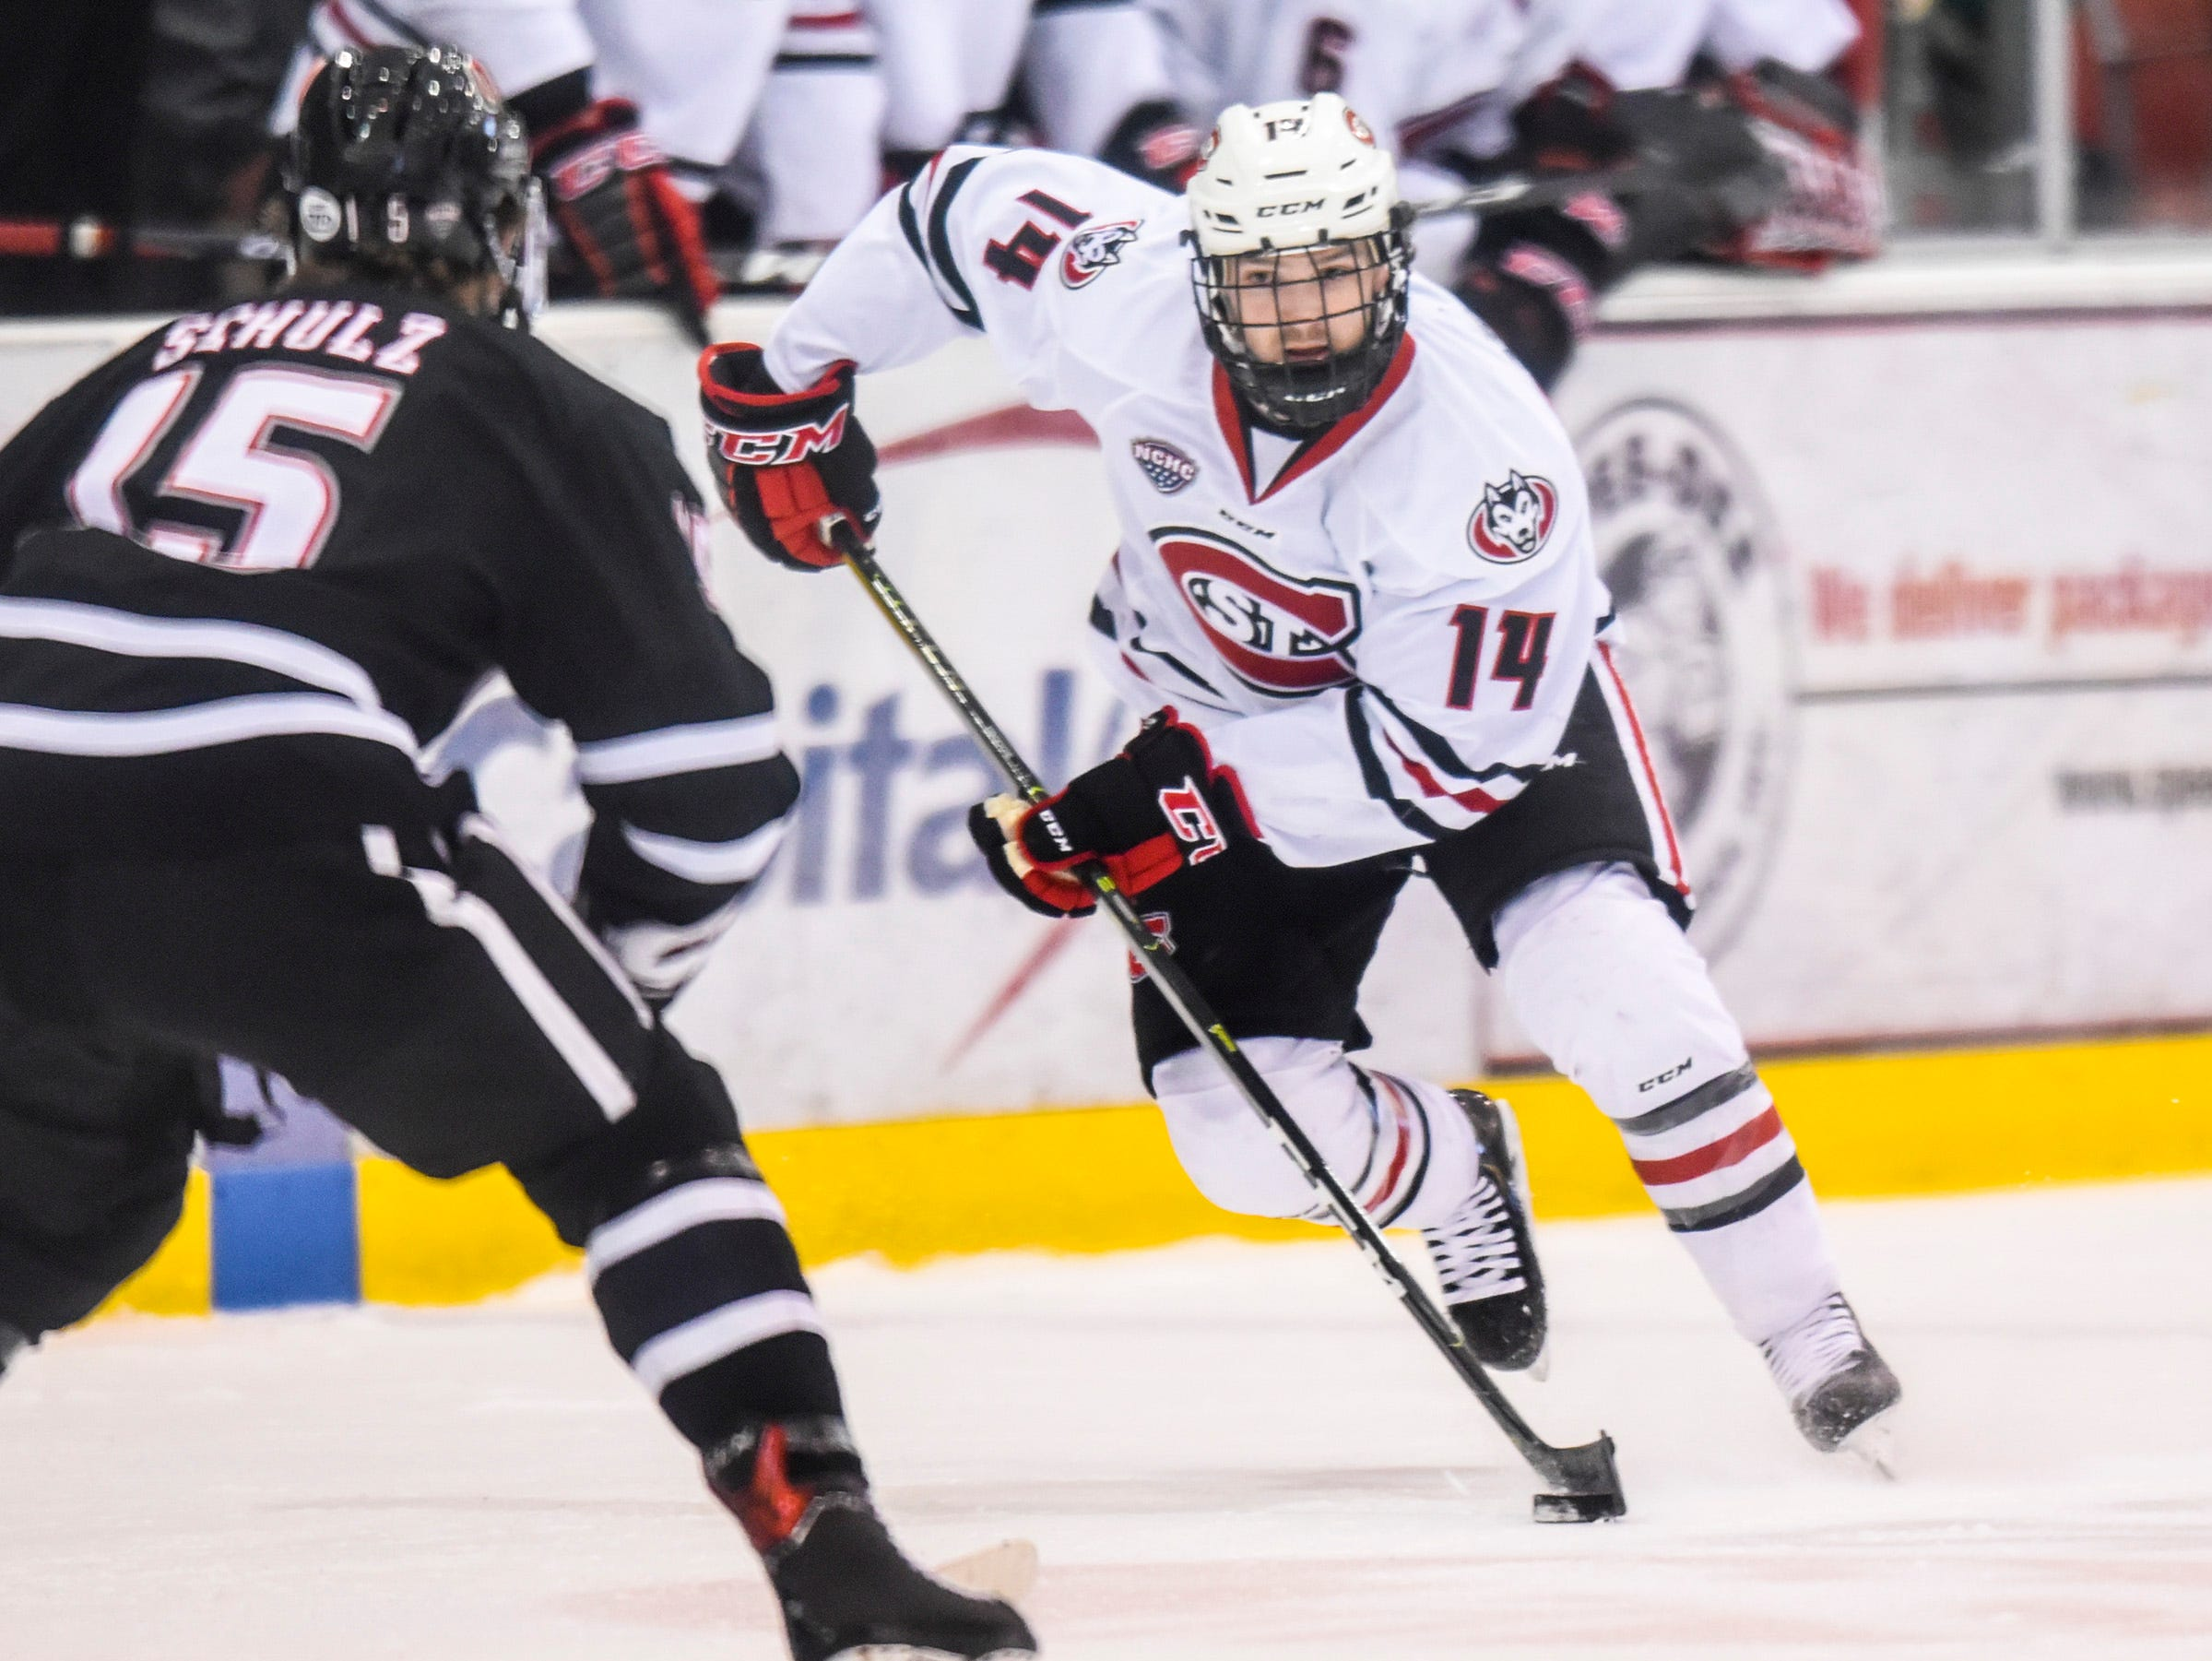 St. Cloud State's Patrick Newell skates with the puck against Nebraska-Omaha during the first period Saturday, Dec. 8, at the Herb Brooks National Hockey Center.